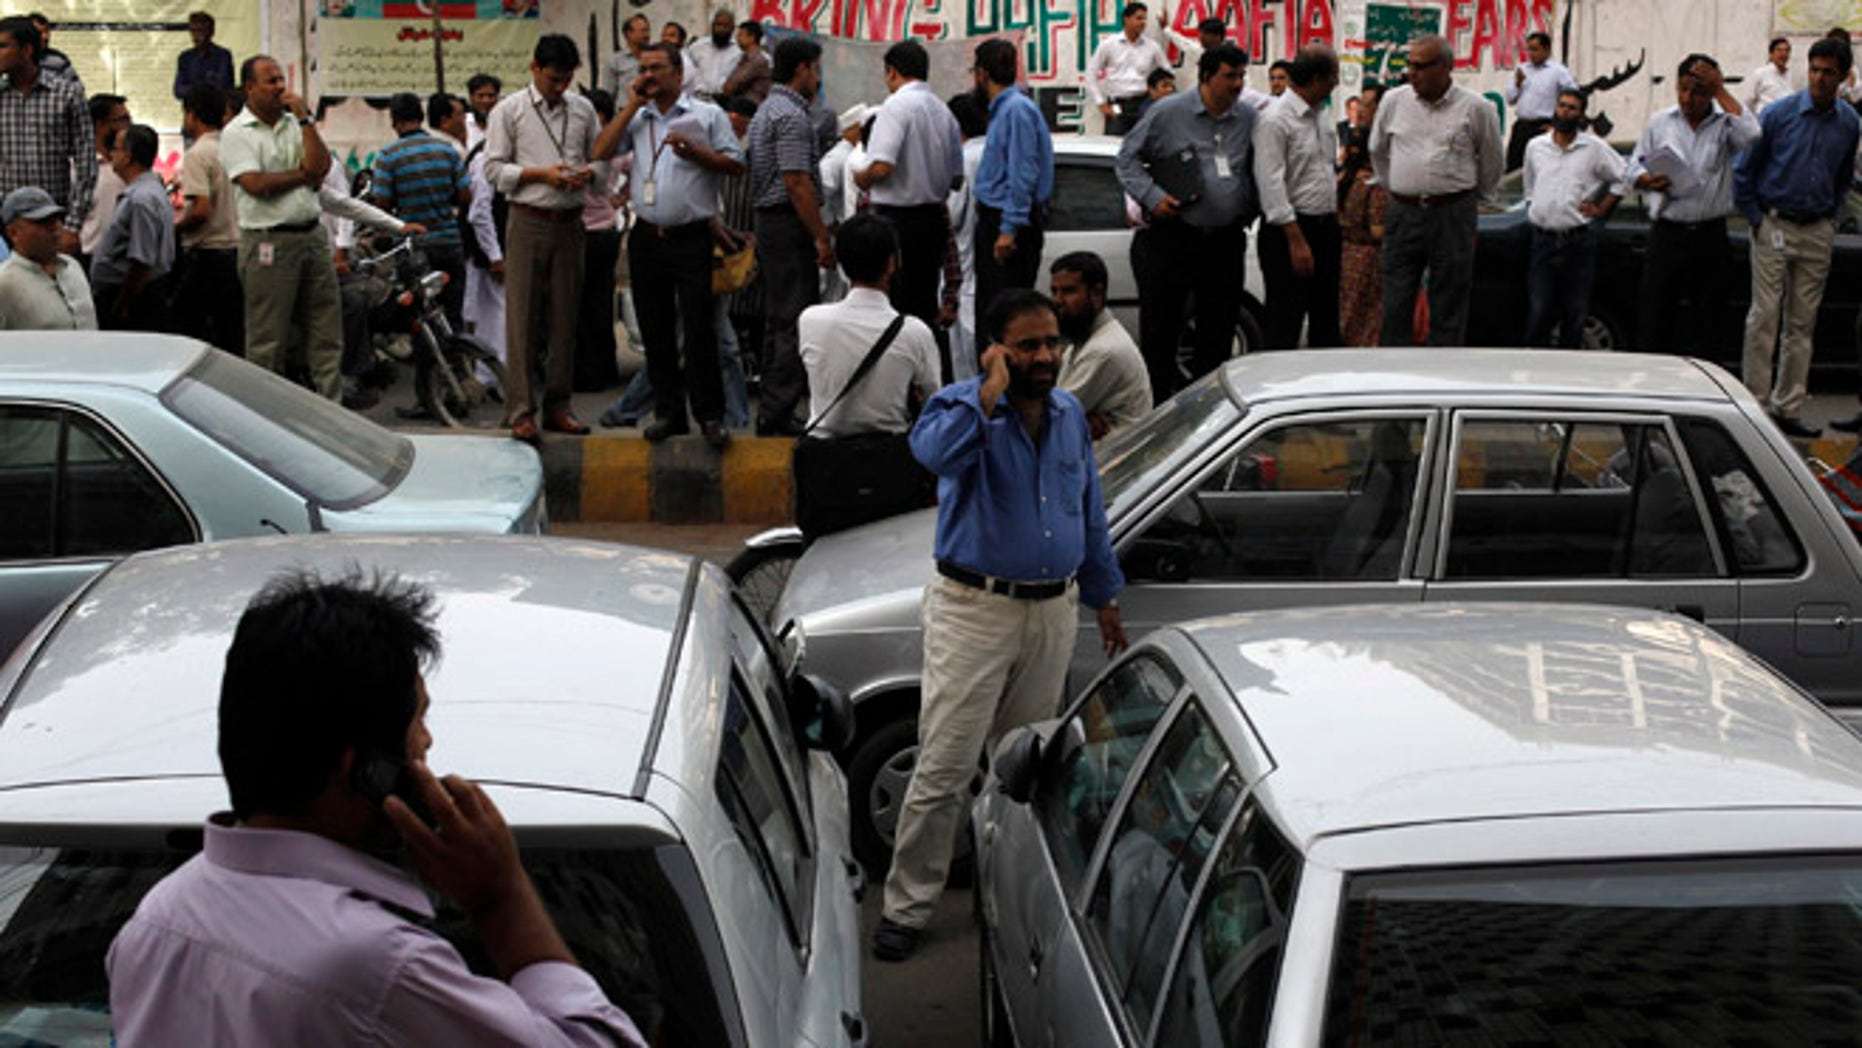 April 16, 2013: Office workers stand outside of their buildings following an earthquake tremor in Karachi. An magnitude 7.8 earthquake struck Iran on Tuesday with tremors felt across Pakistan among other regions, media reported.